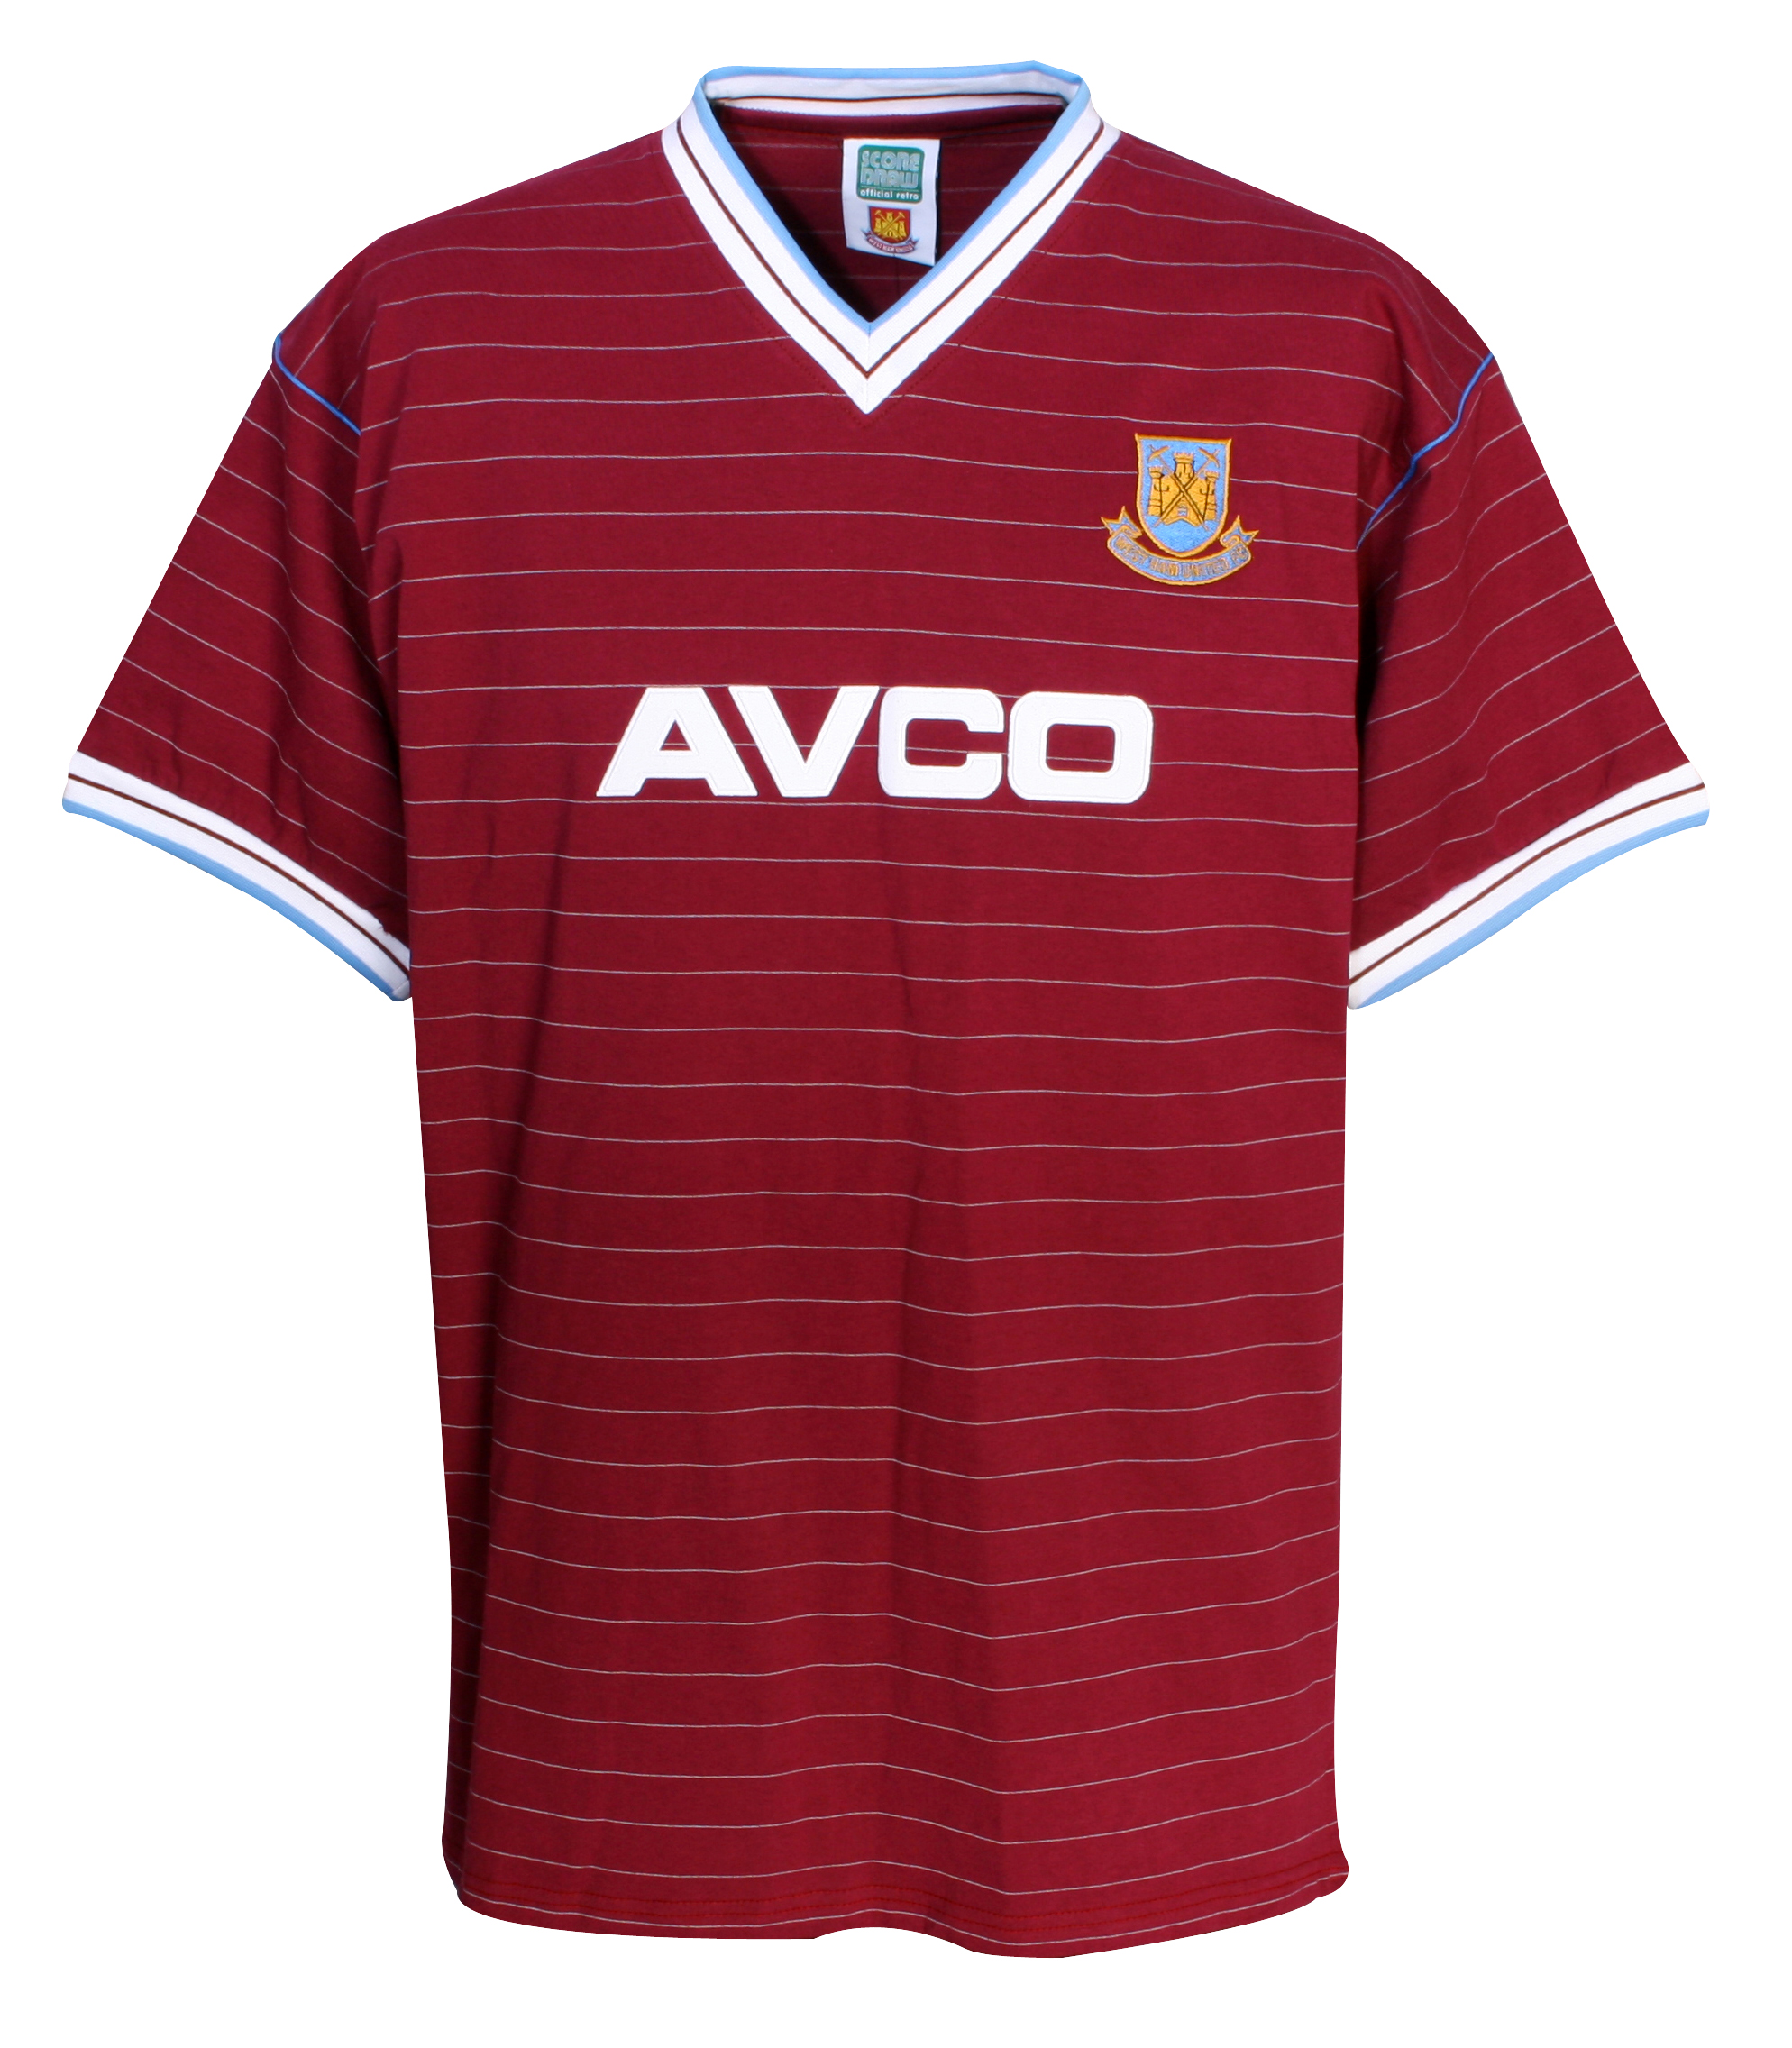 West Ham United 1986 Avco Home Shirt Claret